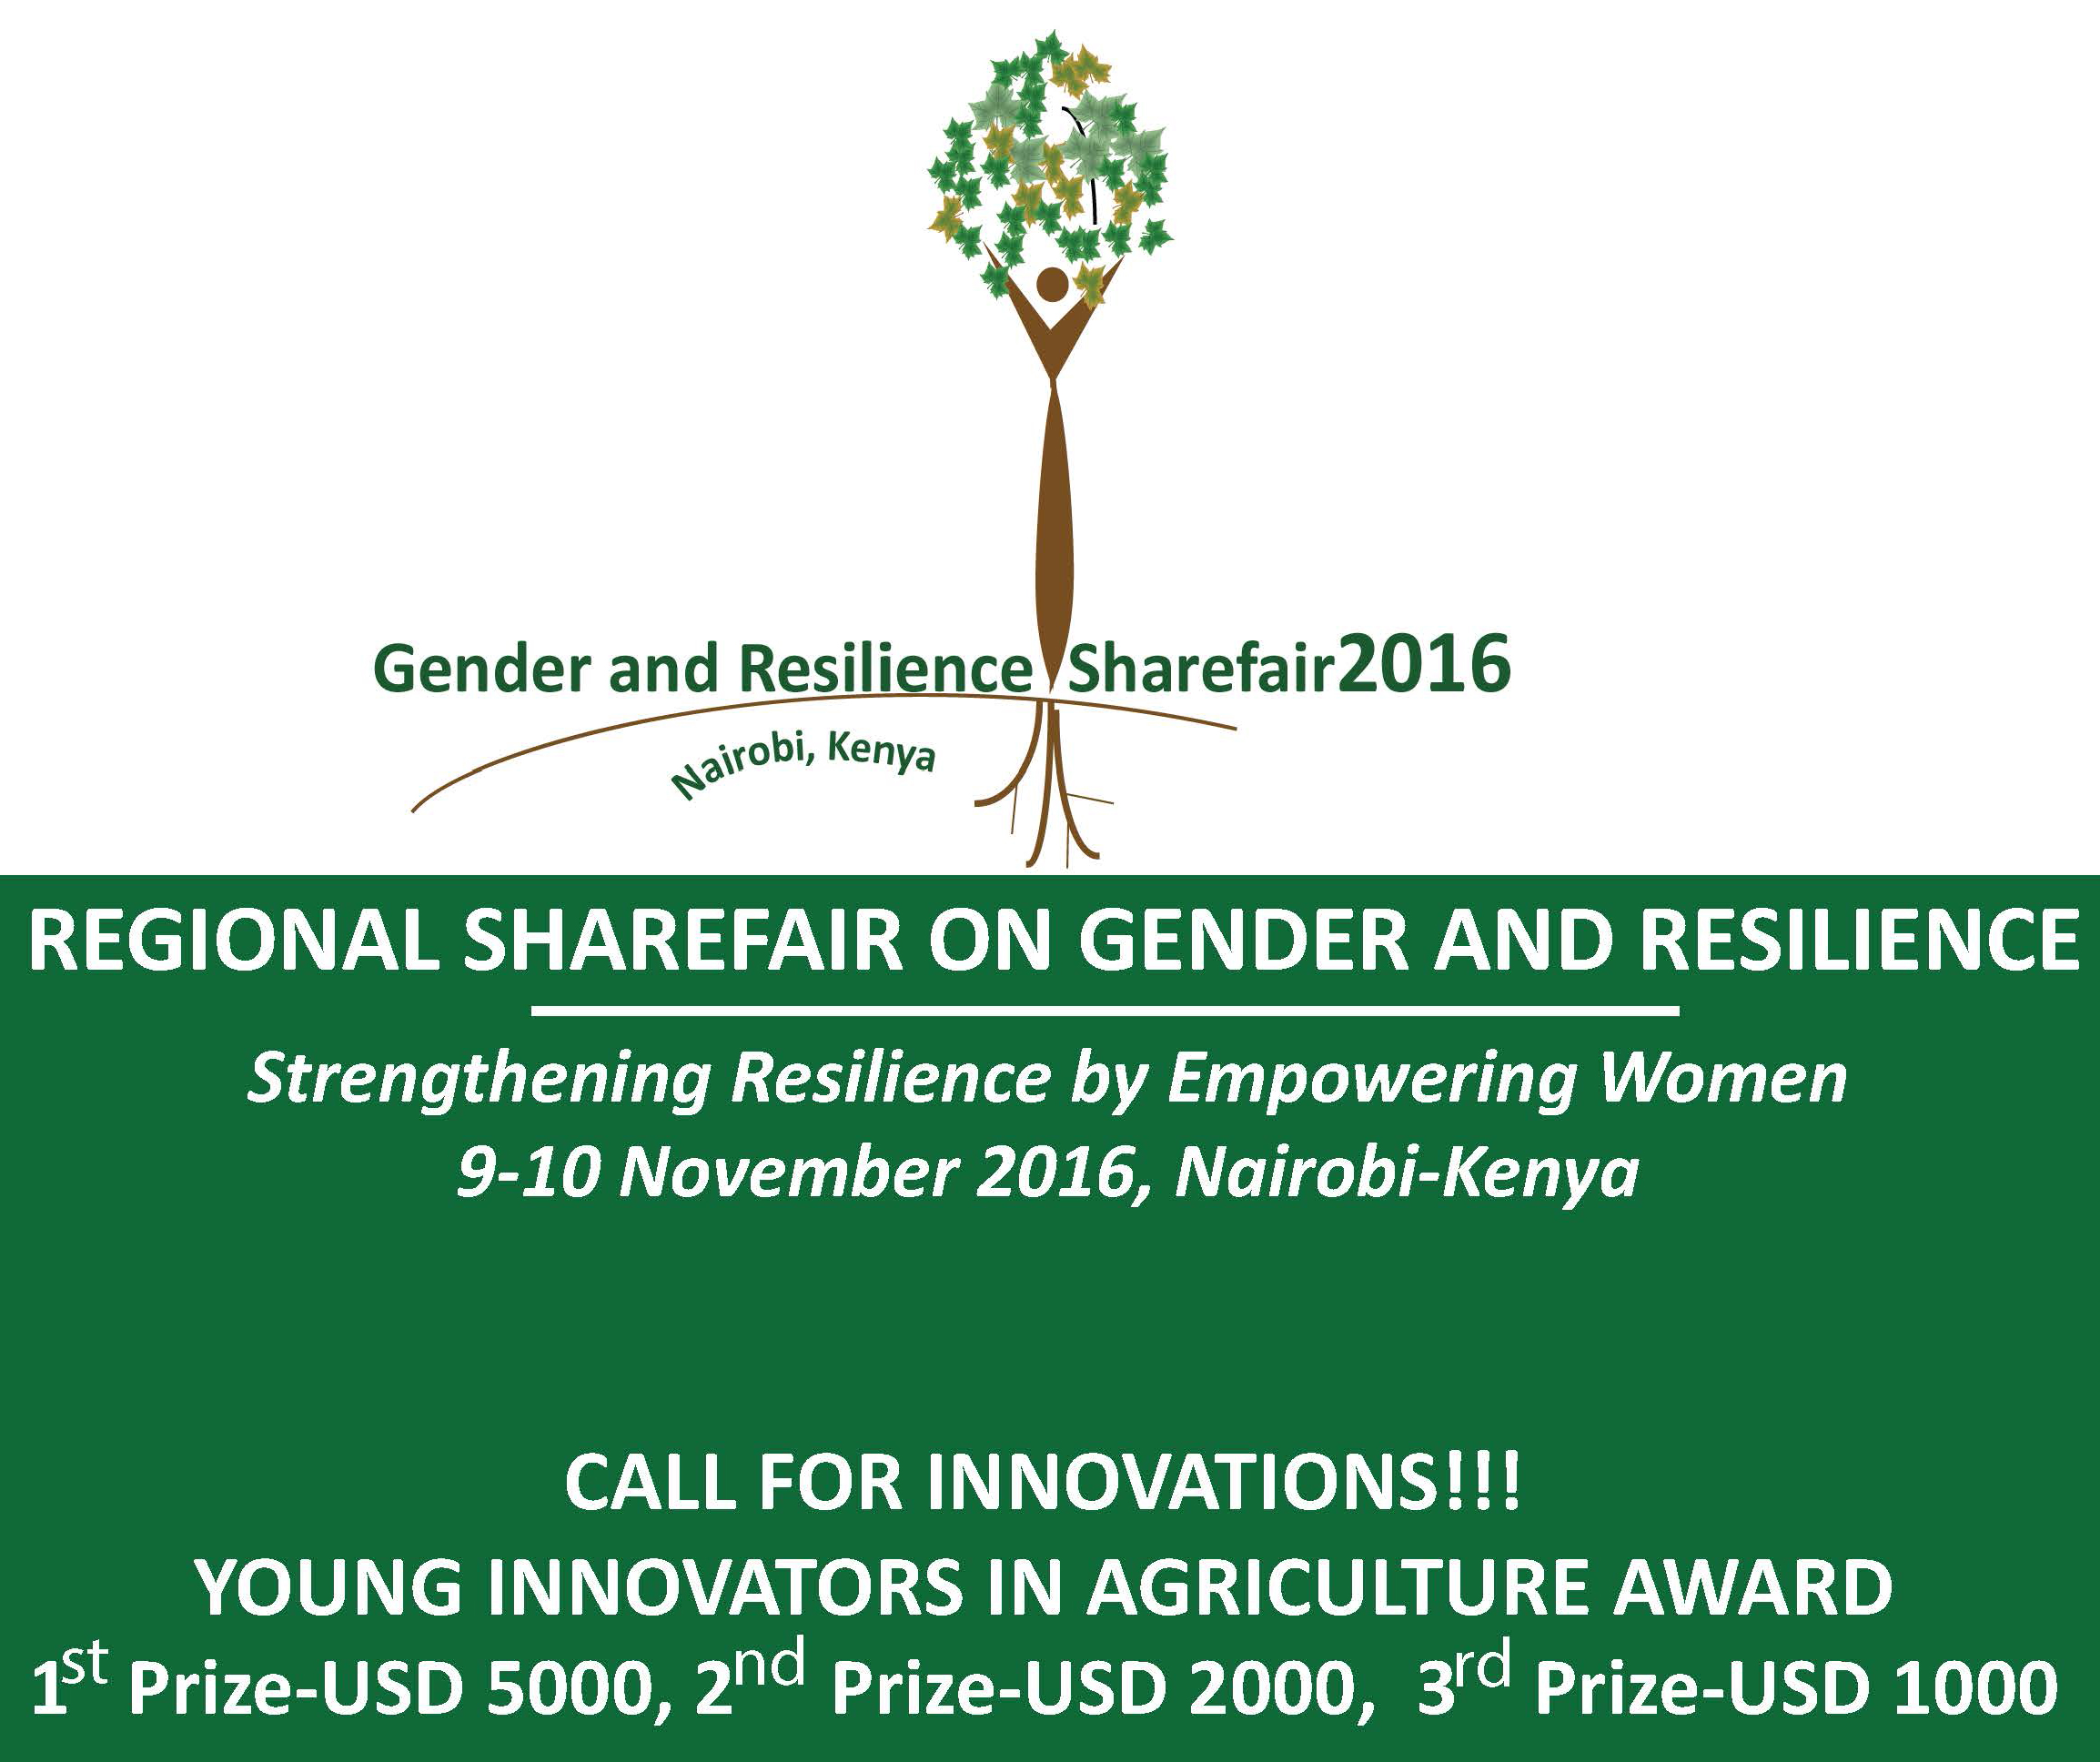 Young Innovators in Agriculture Award